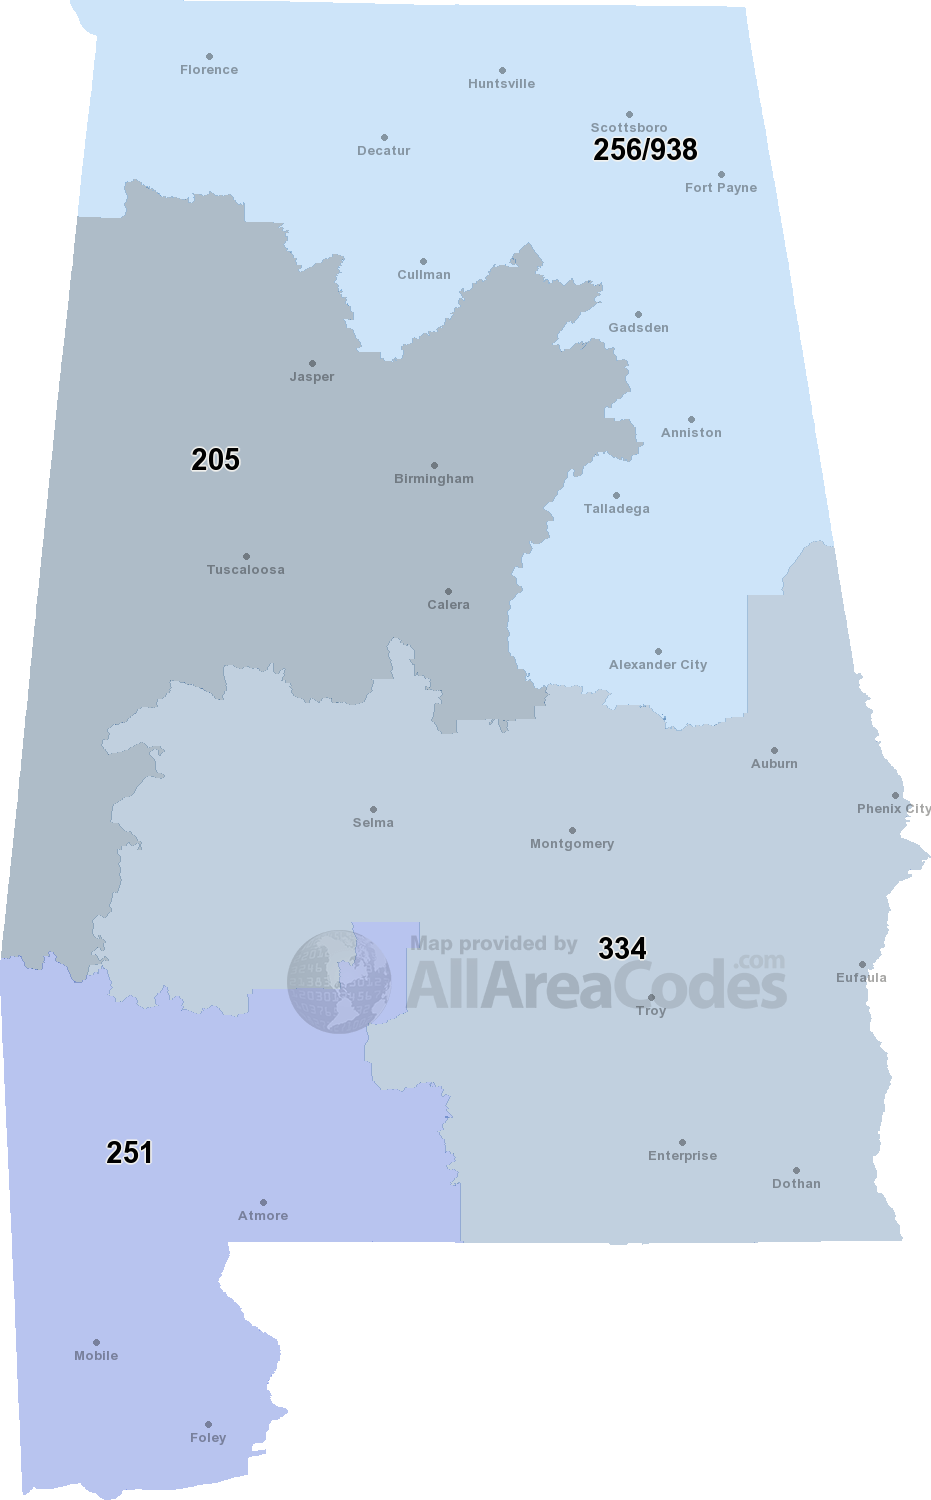 830 Area Code Time Zone : Interactive, Printable